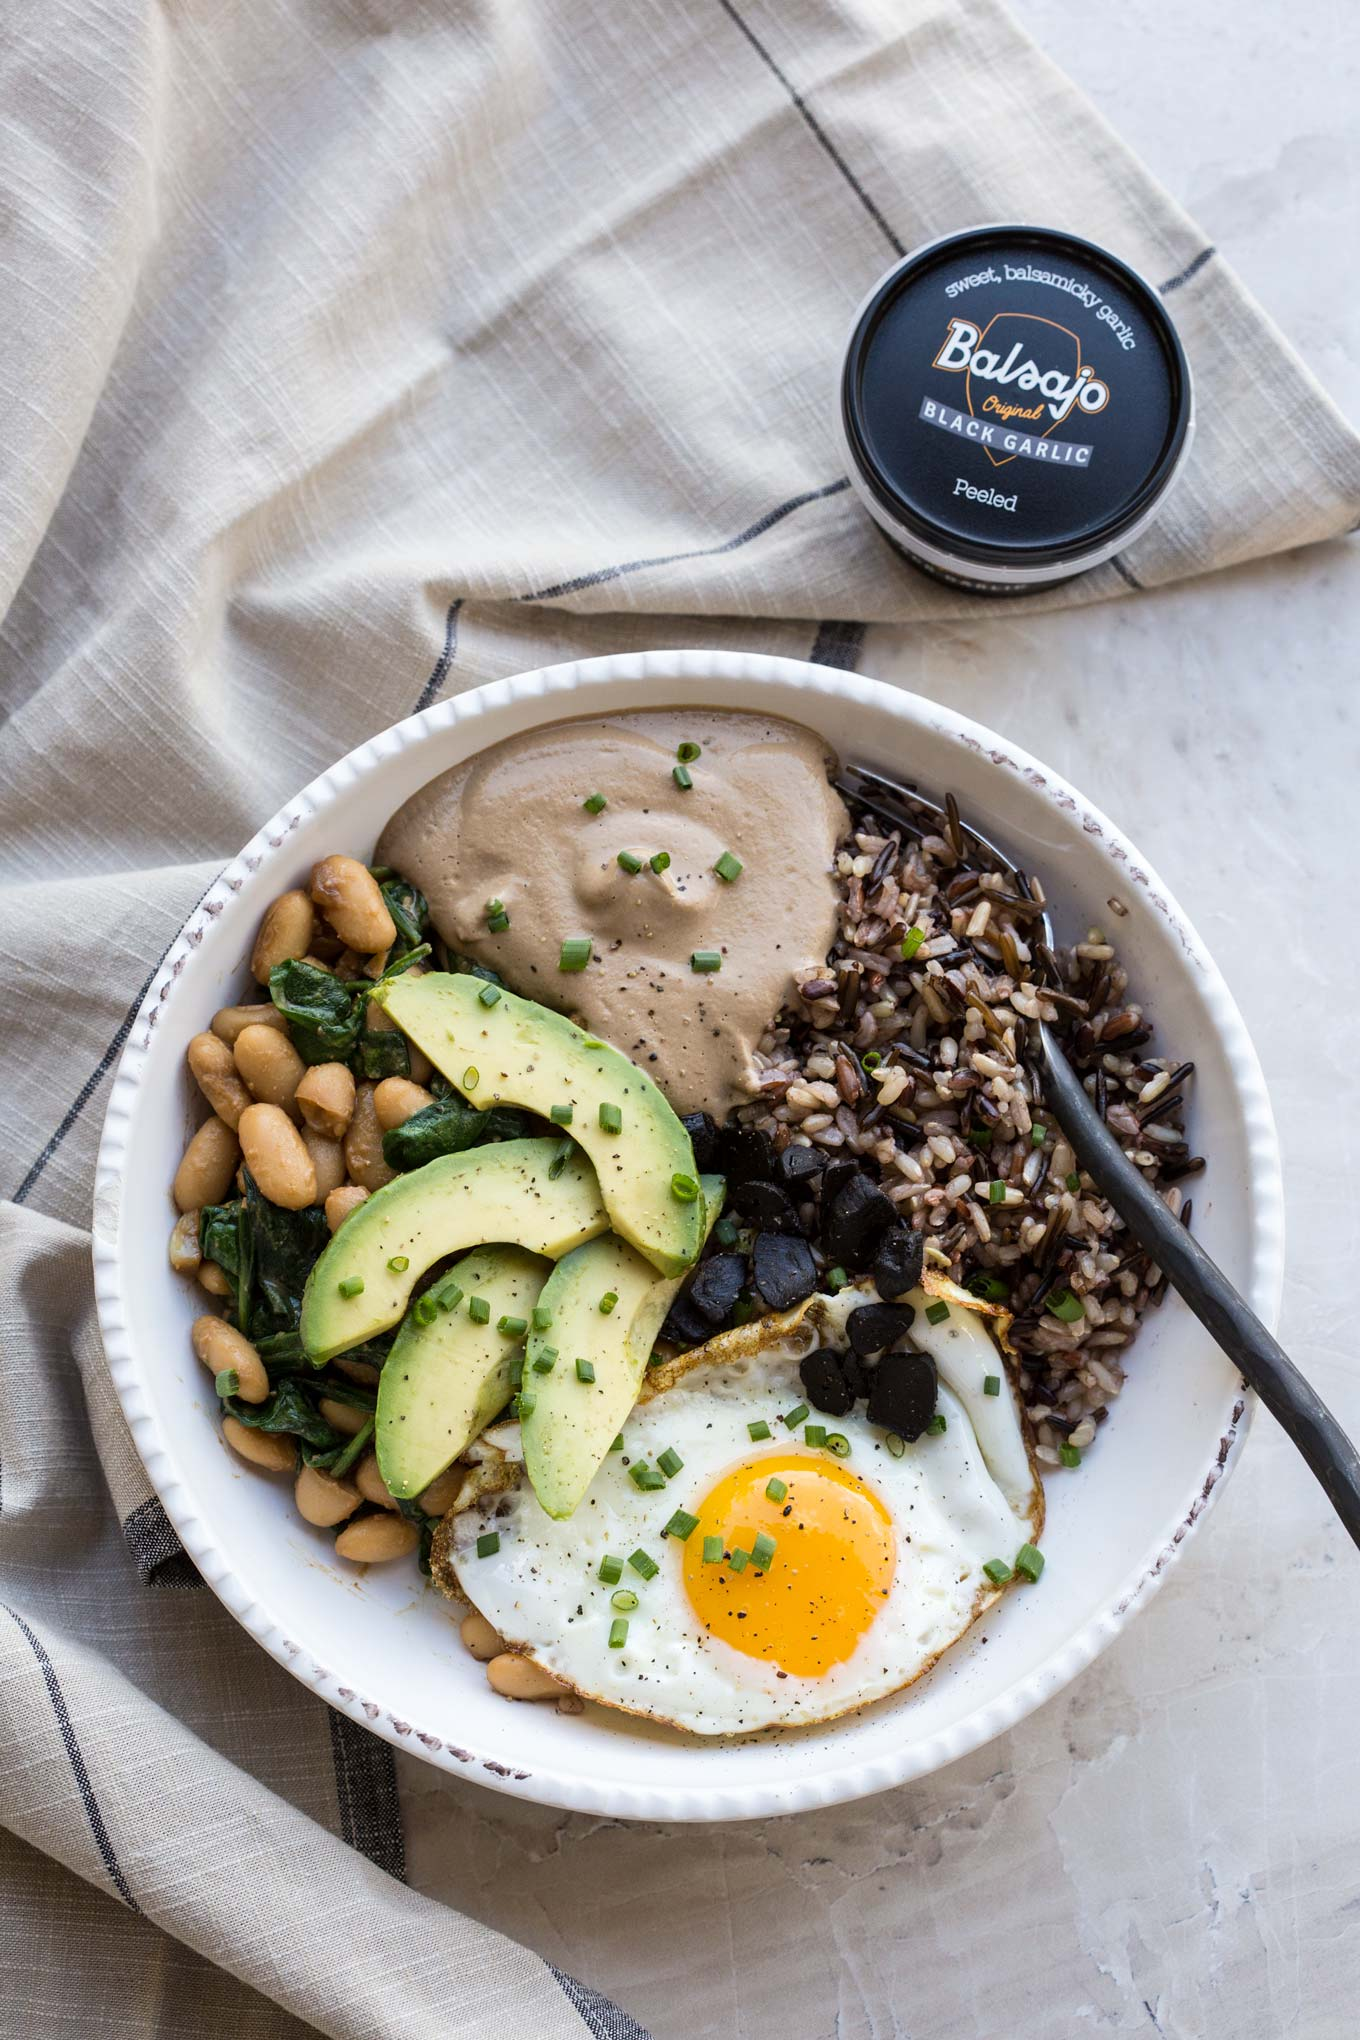 Protein Bowl with Cashew Black Garlic Sauce, Fried Egg, Beans and Avocado in a Creamy Bowl and Balsajo Black Garlic Box - birds eye view